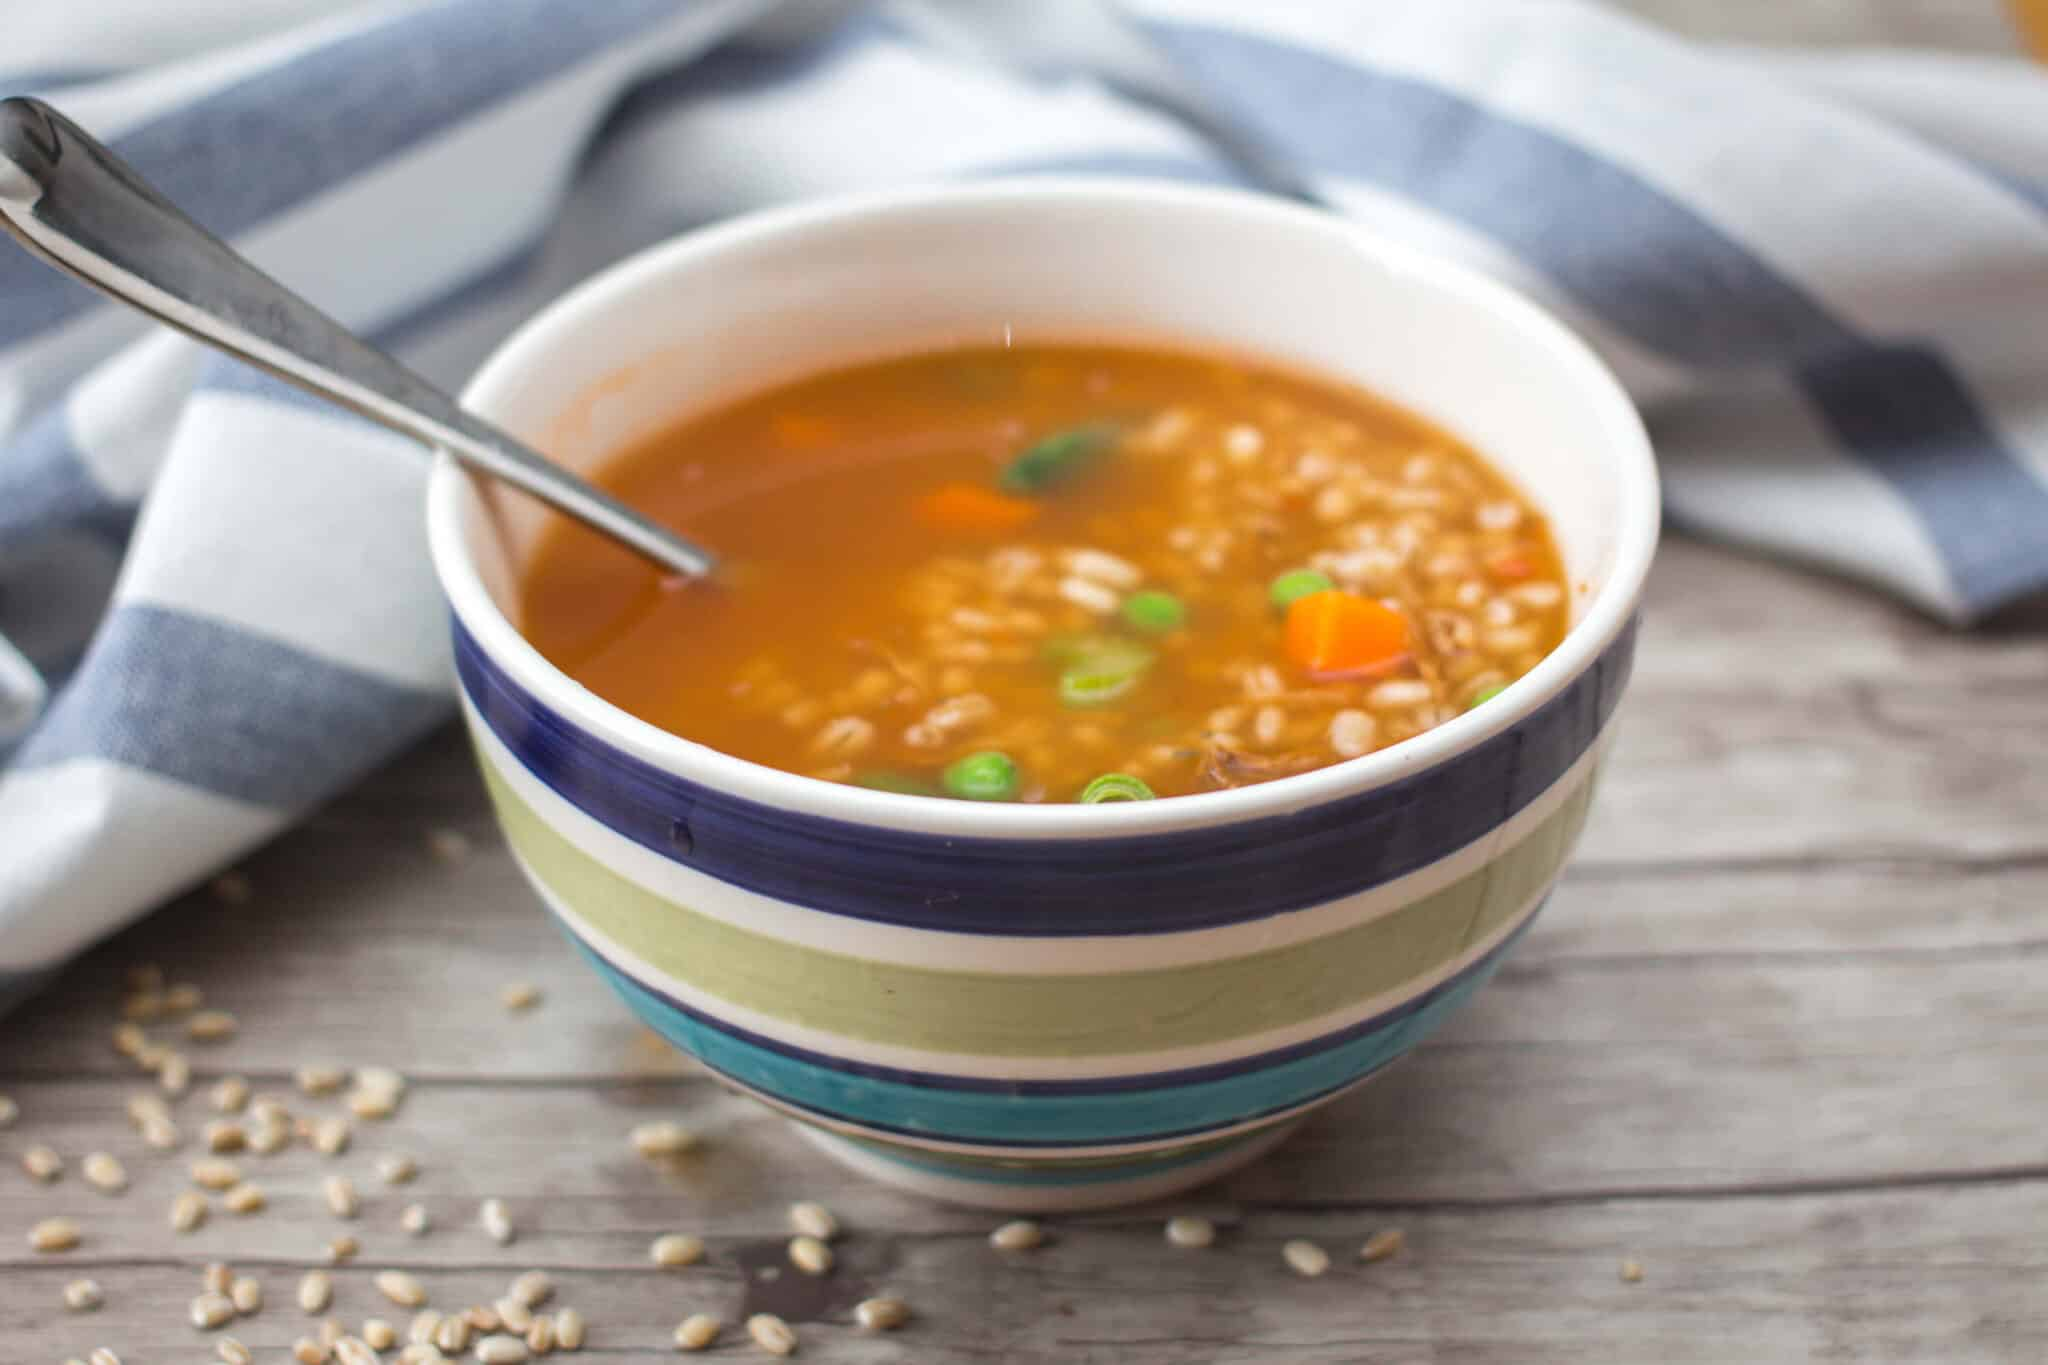 blue striped bowl of vegetable and barley soup on a table